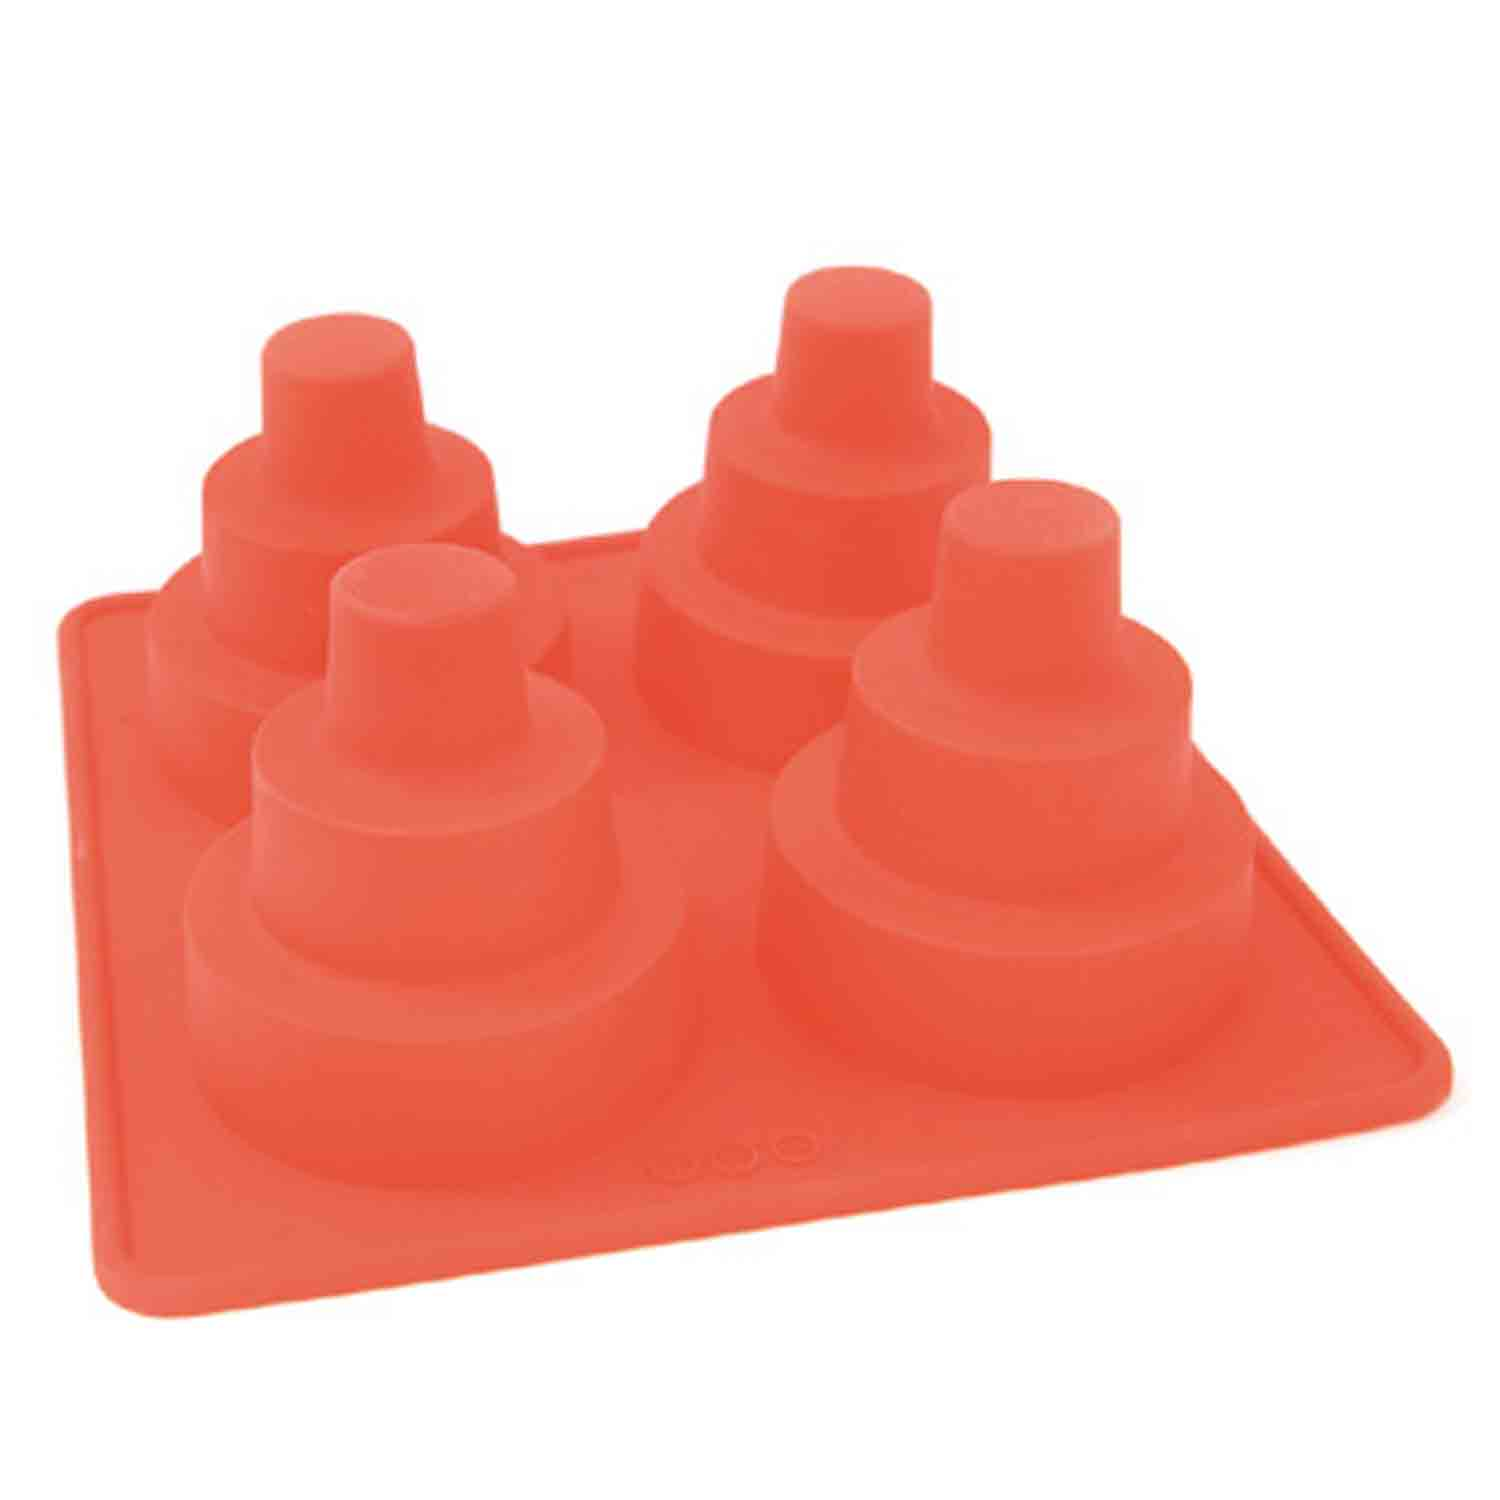 Silicone 3 Tier Mini Wedding Cake Pan 50 235 Country